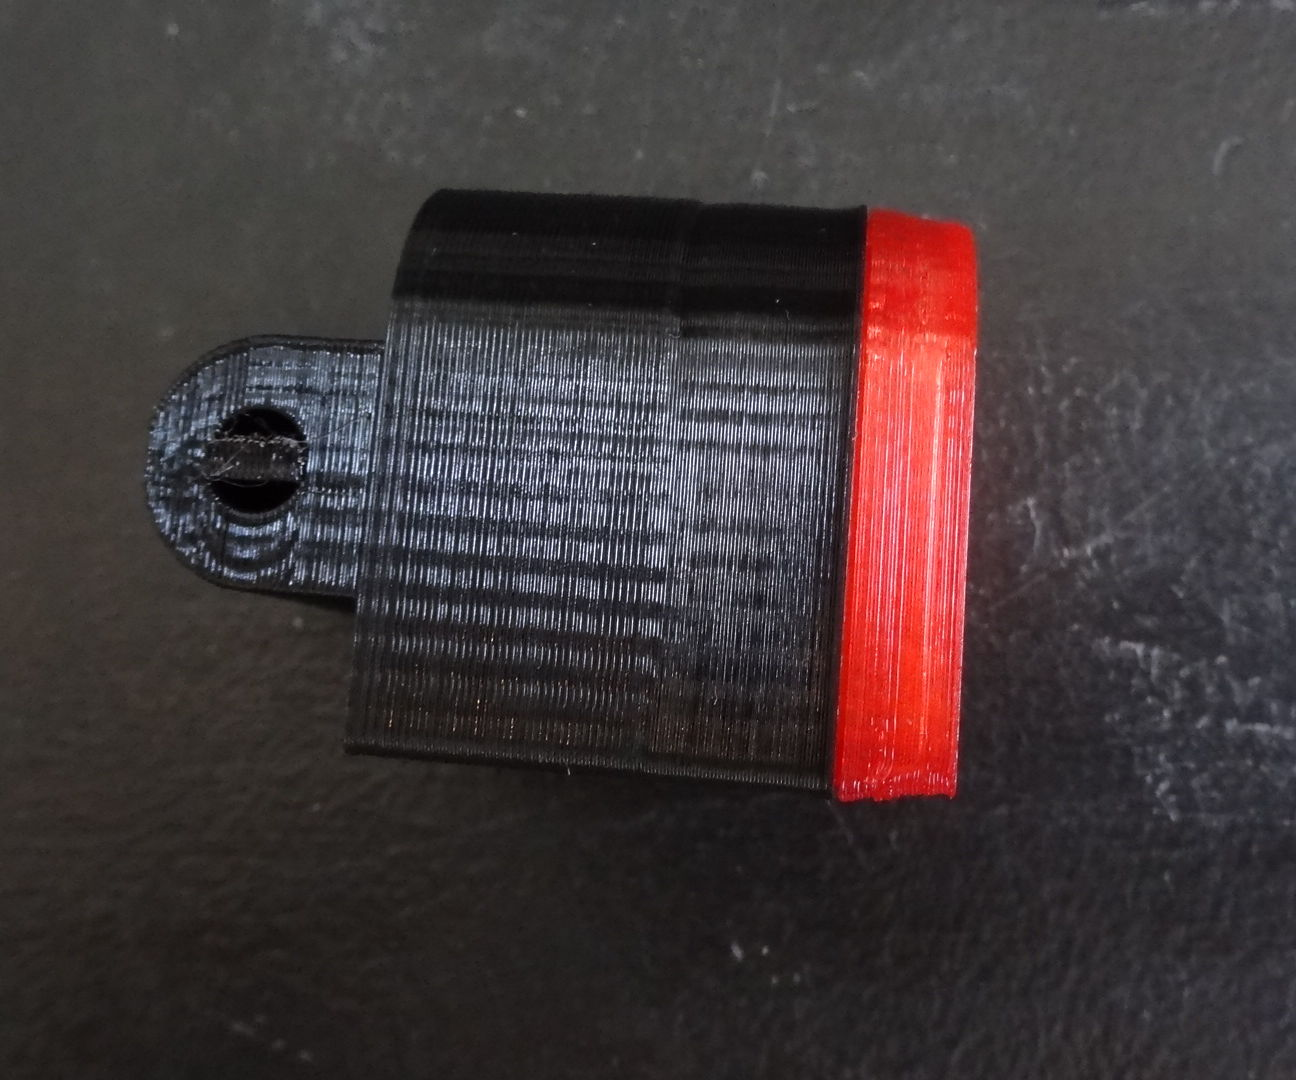 3D printed Bike light (rear) without battery